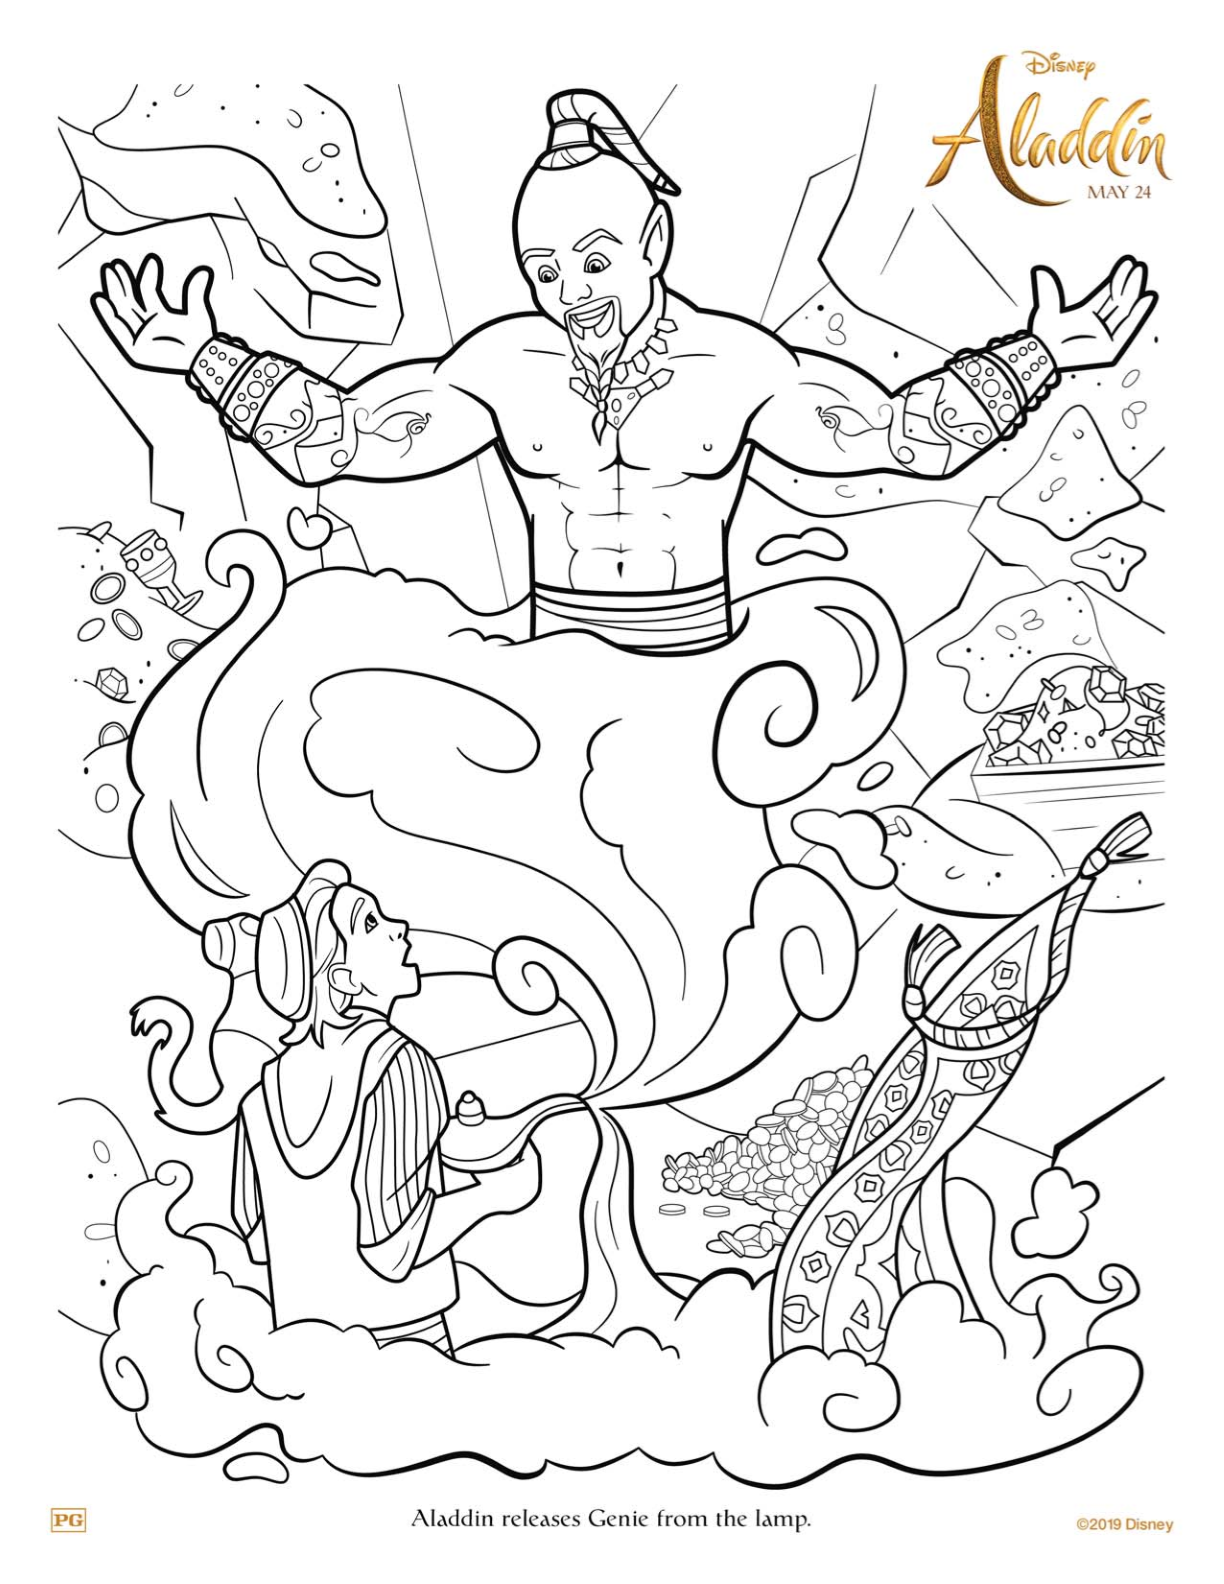 Free Printable Disney Aladdin And Genie Coloring Page Aladdin Disney Freeprintable Geni Disney Coloring Pages Disney Coloring Sheets Mermaid Coloring Pages